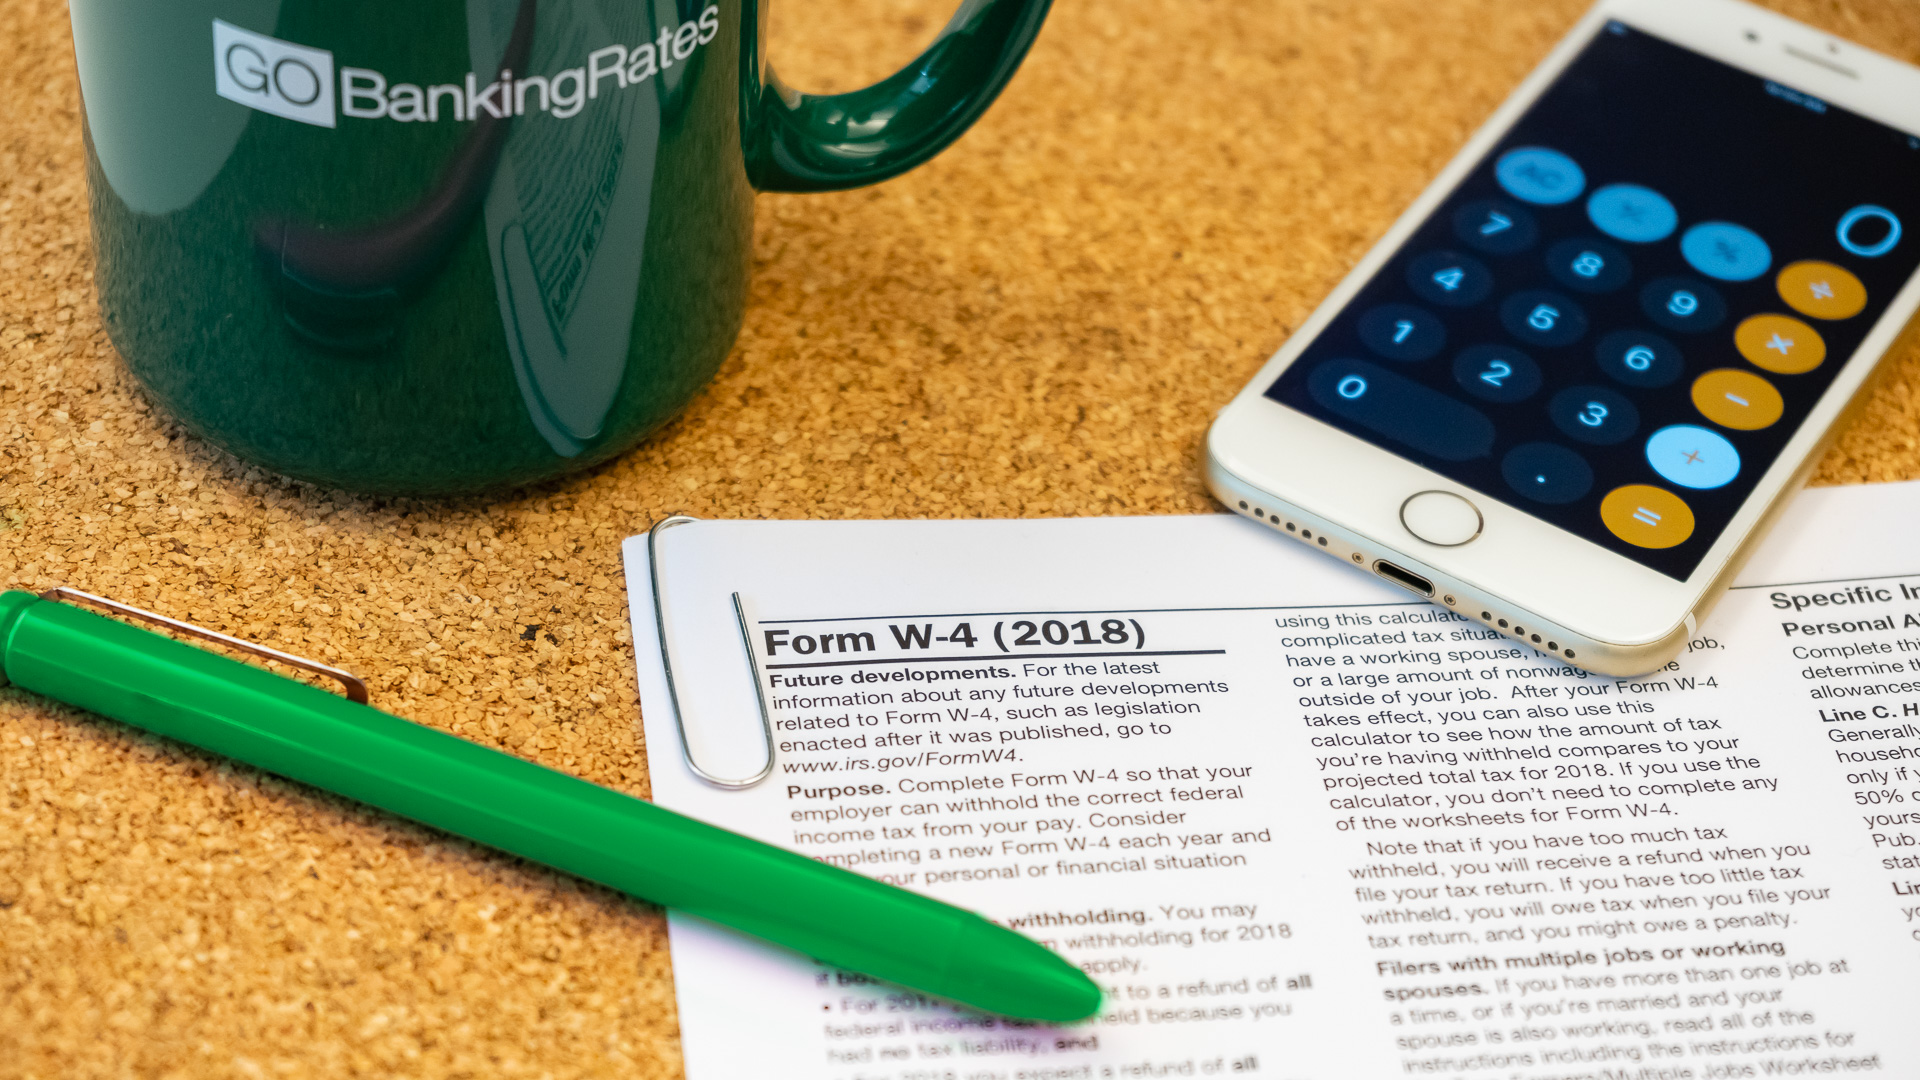 The Complete Guide to Filling Out Your W-4 Form